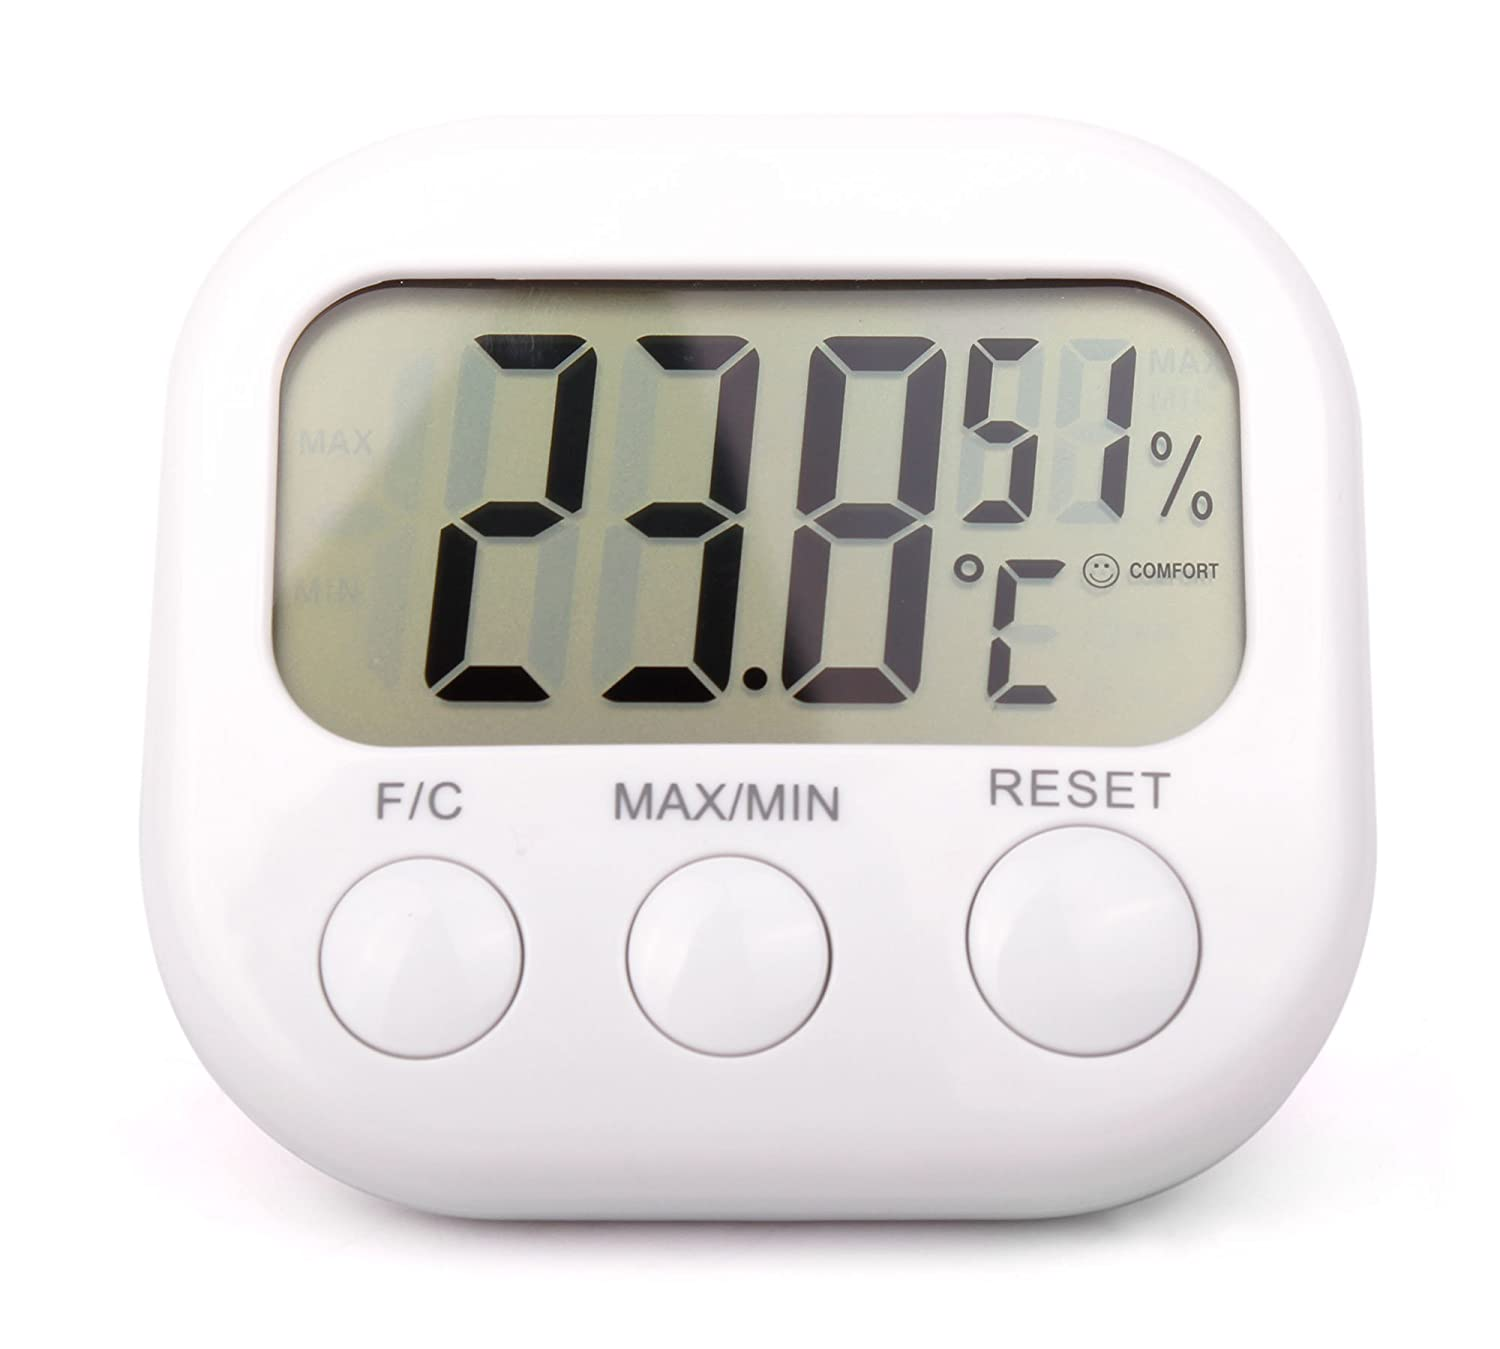 *Twin-Pack* Small Indoor LCD Room Temperature & Humidity Thermometer/Gauge With Stand And Digital Display - Perfect For Use In The Office Or At Home - by DURAGADGET 5054019157175